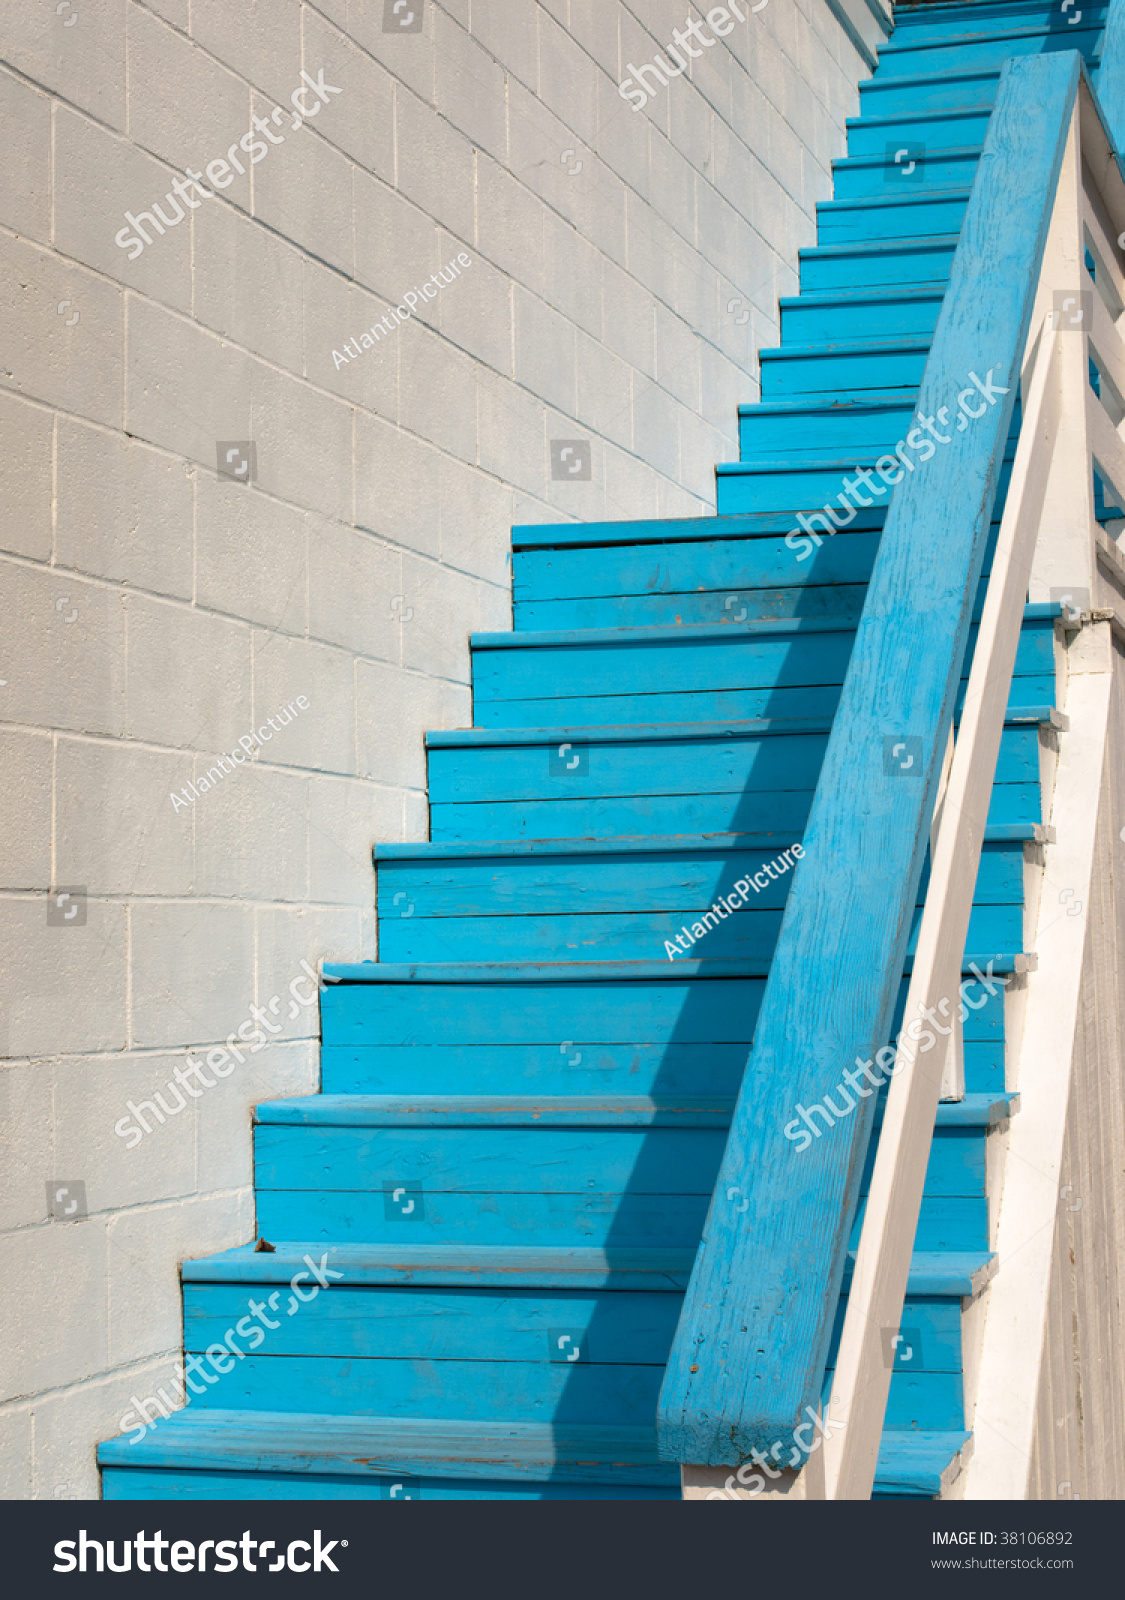 Blue Steps To Success: Blue Steps On A White Building Stock Photo 38106892